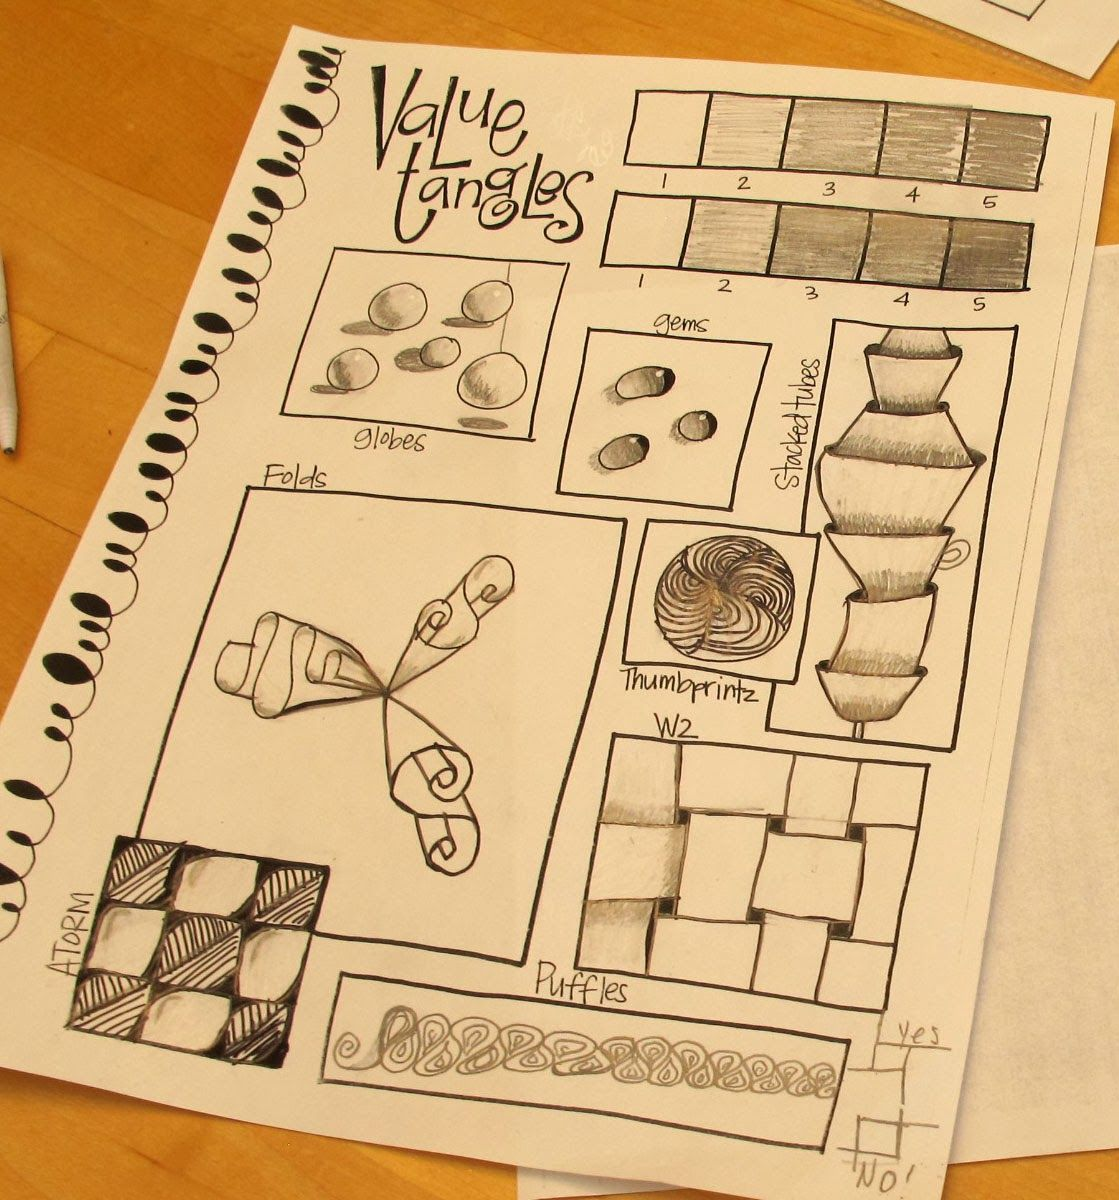 T. Matthews Fine Art:  Value Tangles for learning shading and creating depth using zentangles.